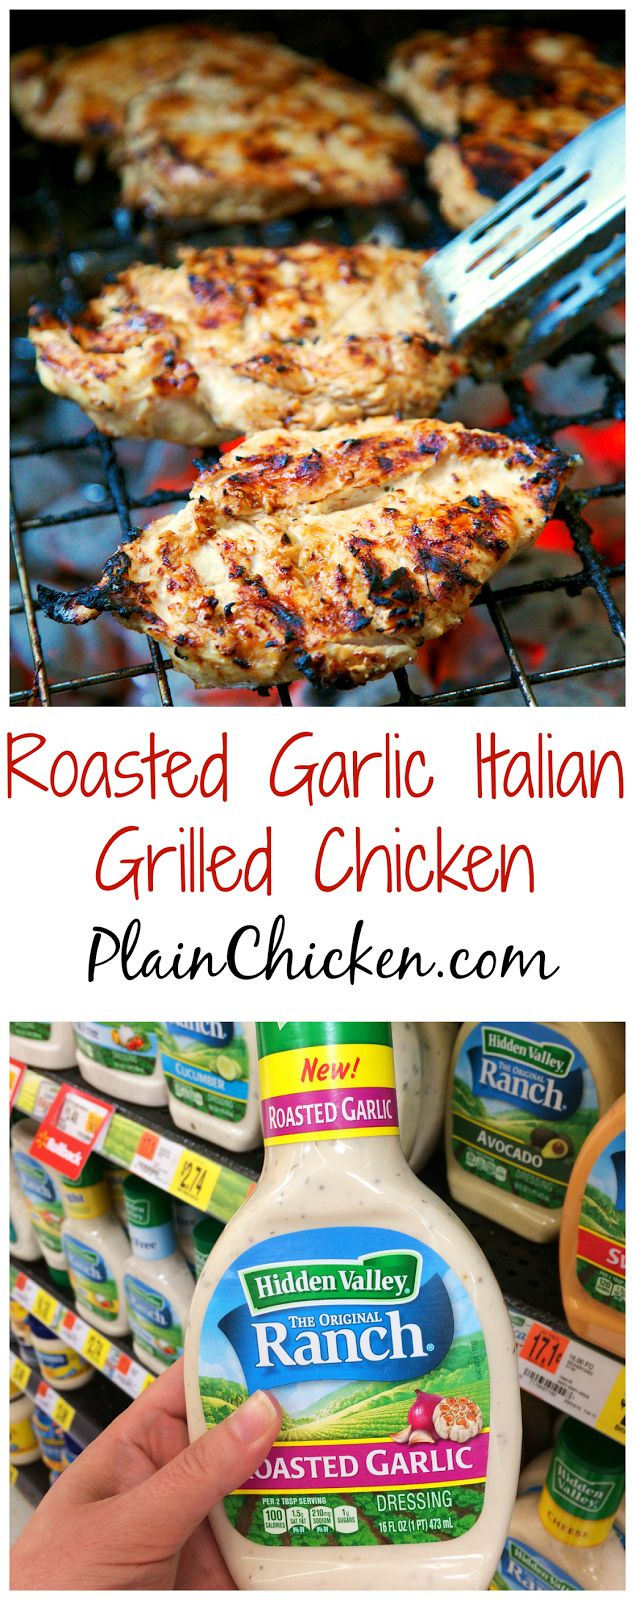 Roasted Garlic Italian Grilled Chicken - only 3 ingredients (including the chicken) - super simple marinade that packs a ton of great flavor! Quick, easy and delicious - my three favorite things!